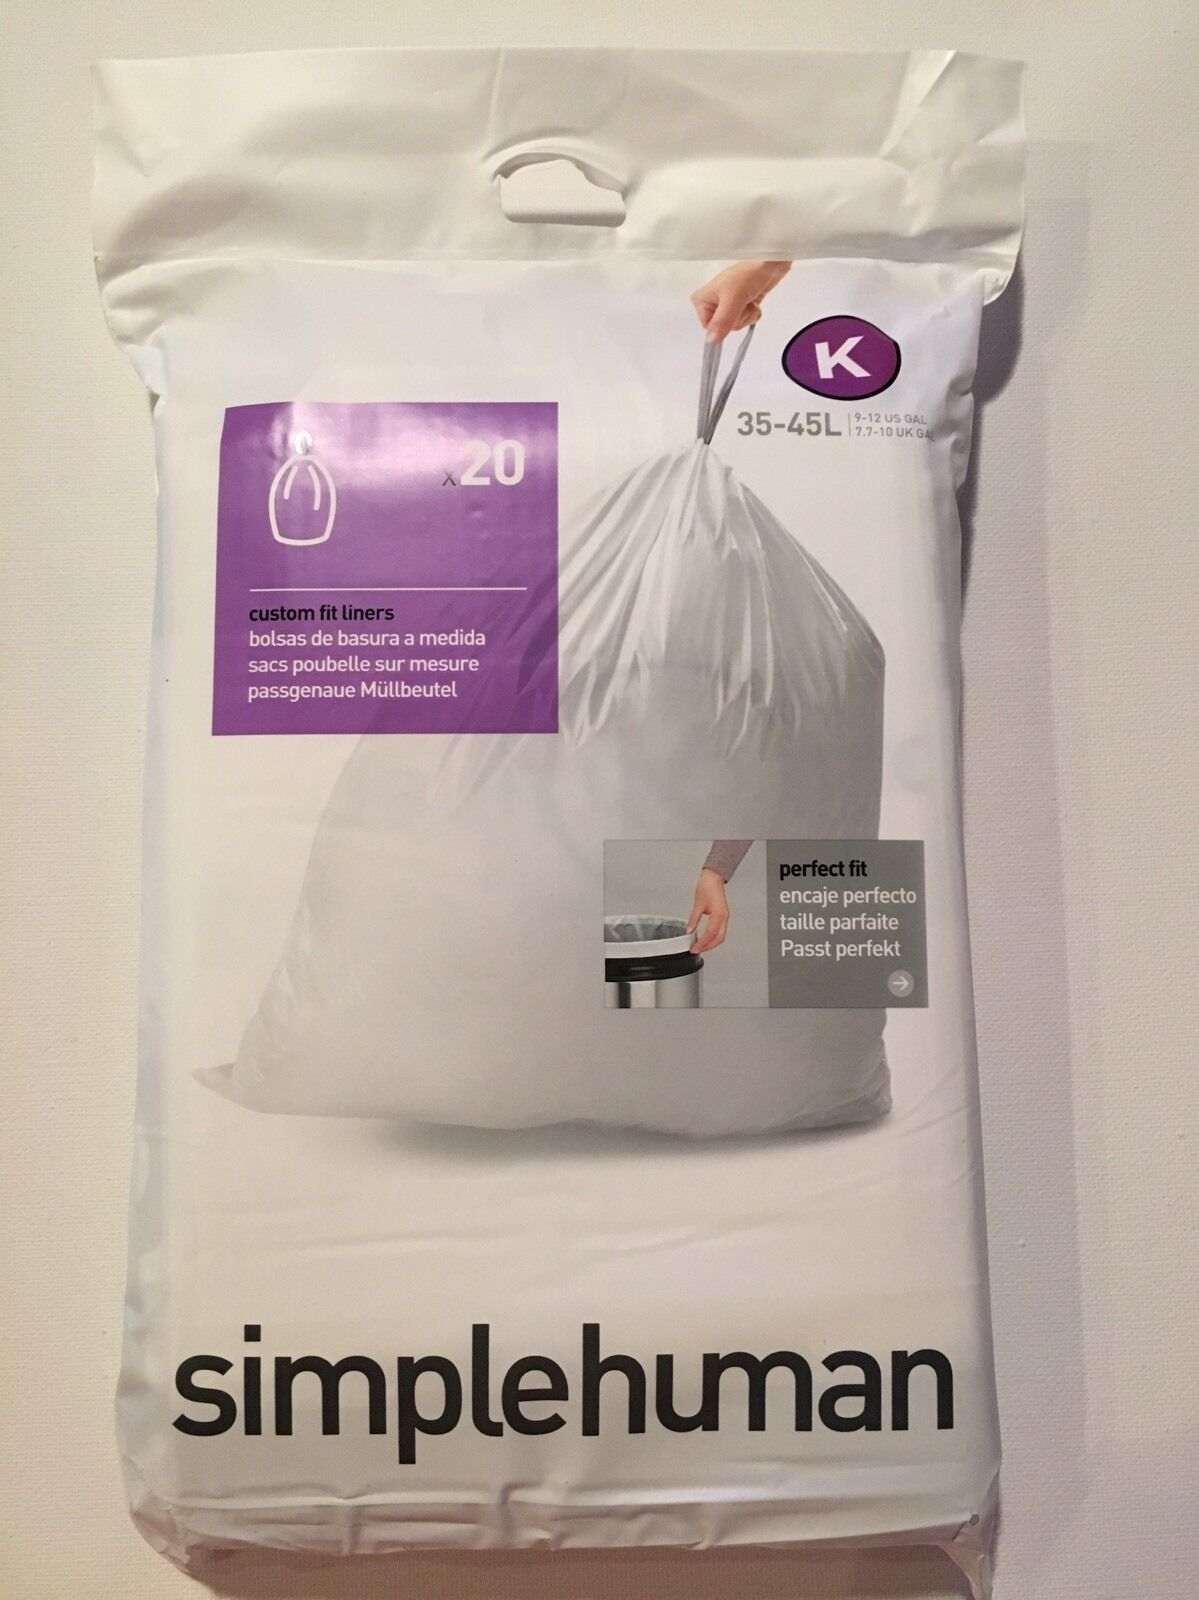 K Simplehuman Plastic Trash Can Liners K 9 12 Gallon 20 Pack Garbage Bags In 2020 Simplehuman Trash Can Garbage Can